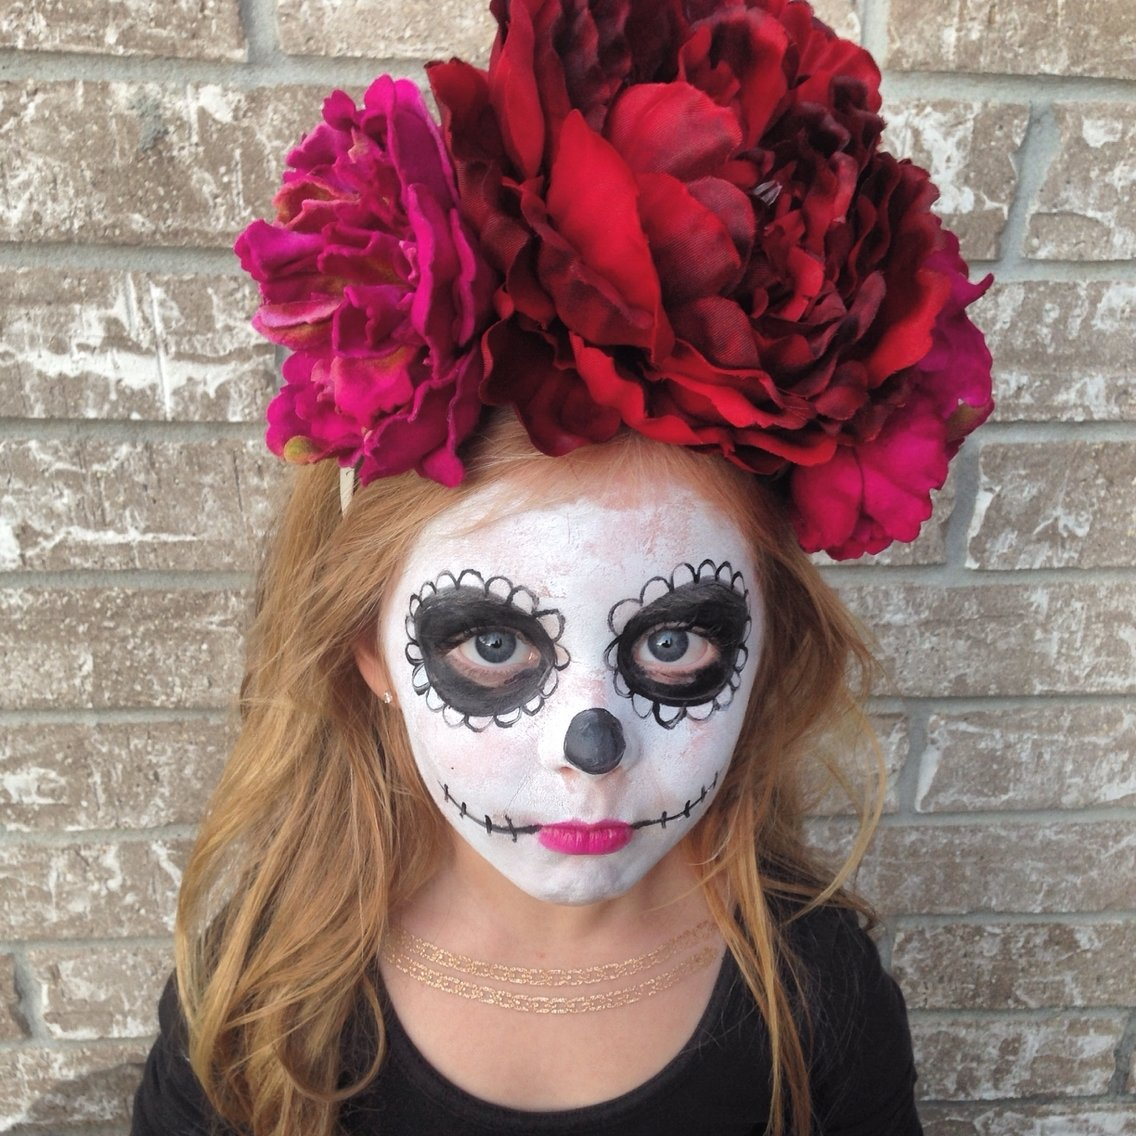 10 Wonderful Dia De Los Muertos Costumes Ideas childrens day of the dead costume dia de los muertos sugar skull 2